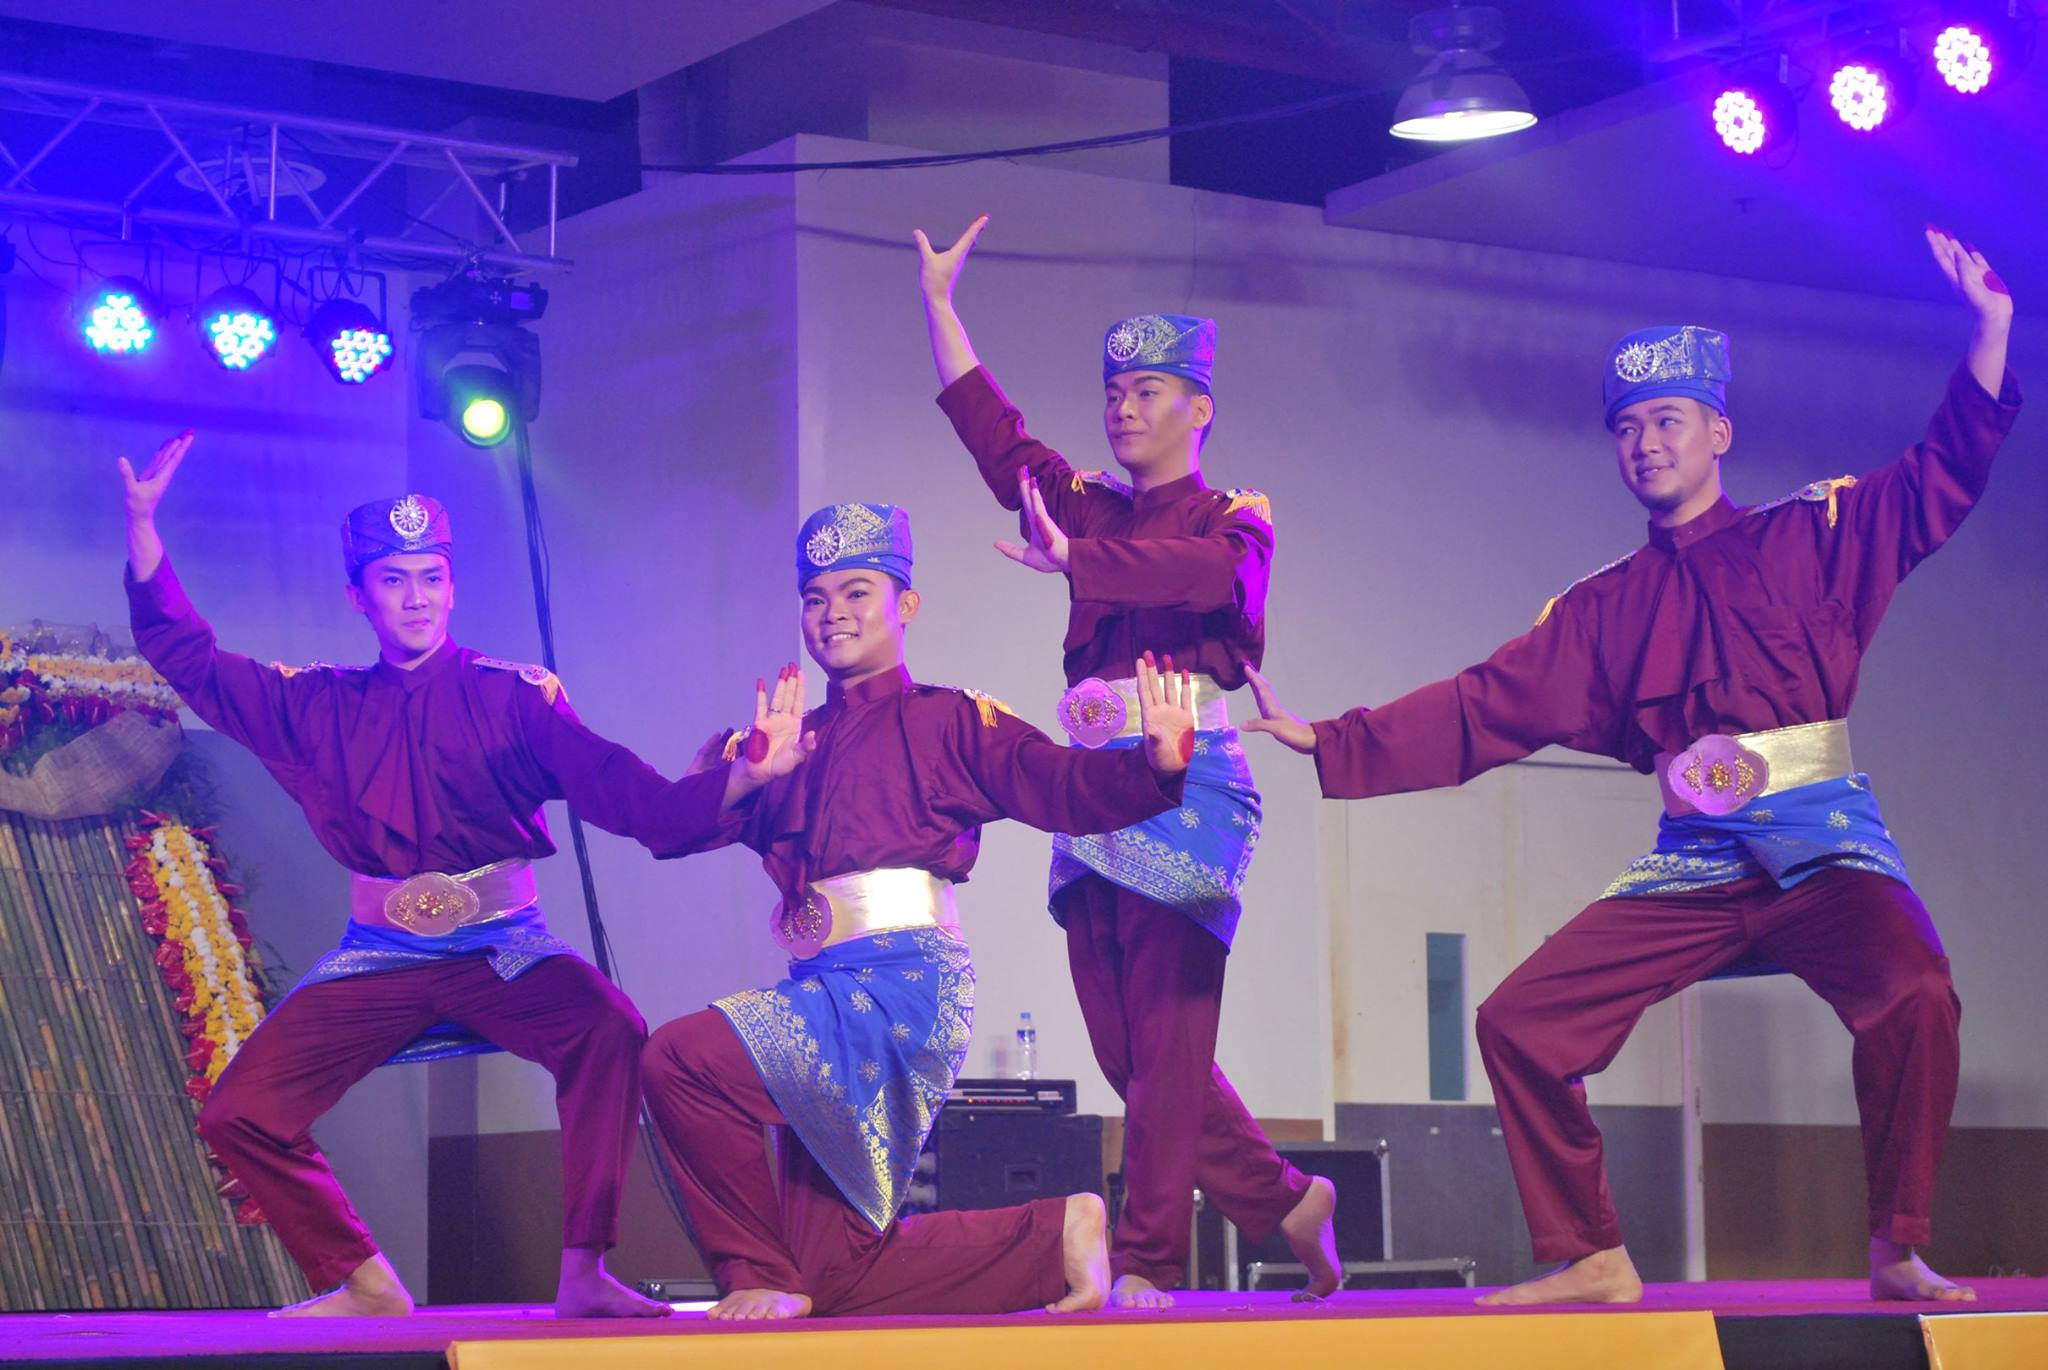 BRUNEI. Another traditional dance, this time from Brunei. Photo courtesy of MSU-CETD Integrated Multimedia group, Budayaw Facebook page